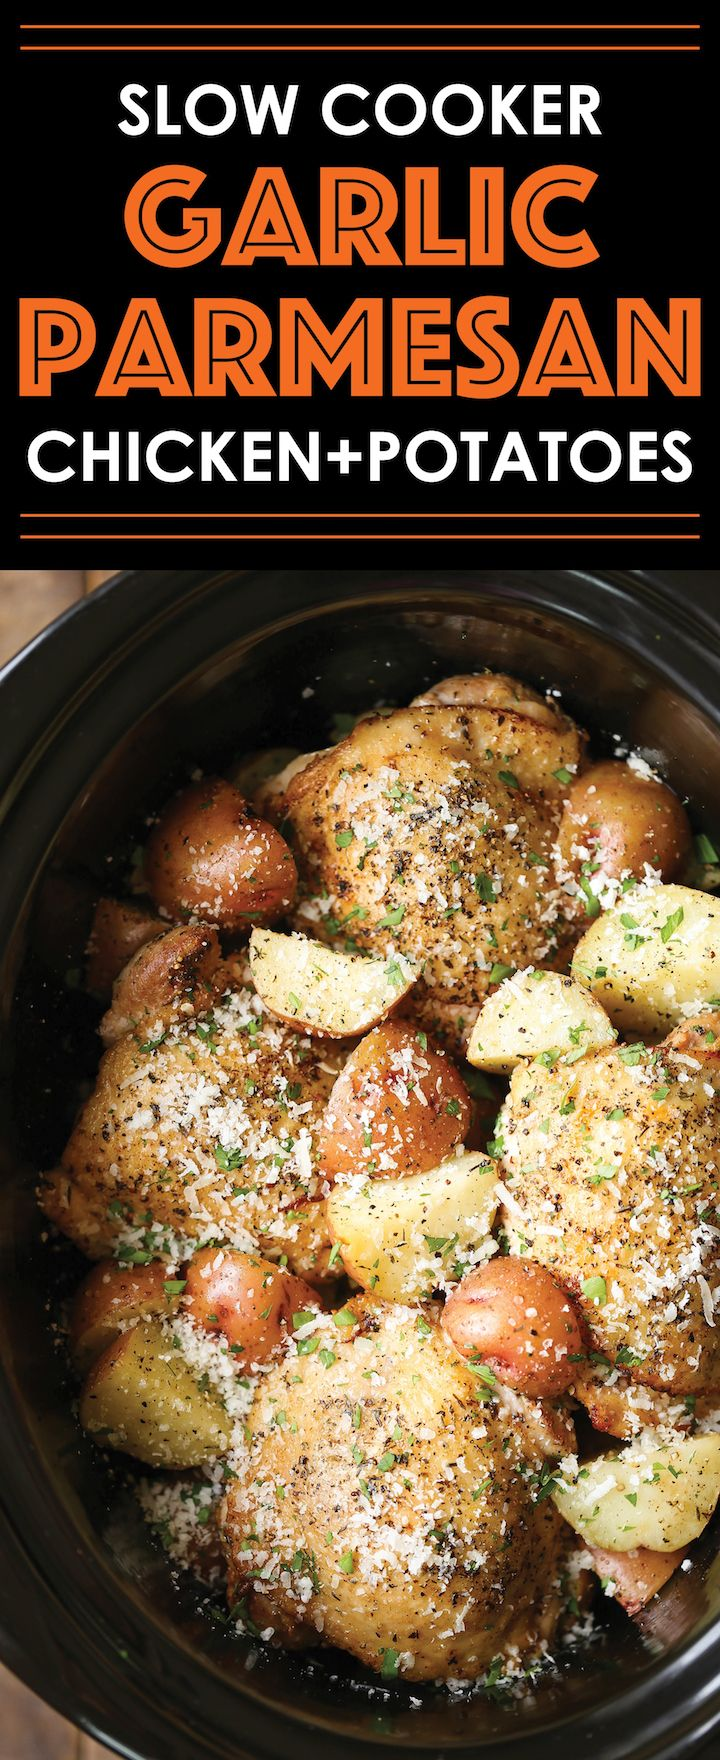 Slow cooker garlic parmesan chicken and potatoes recipe garlic slow cooker garlic parmesan chicken and potatoes forumfinder Choice Image